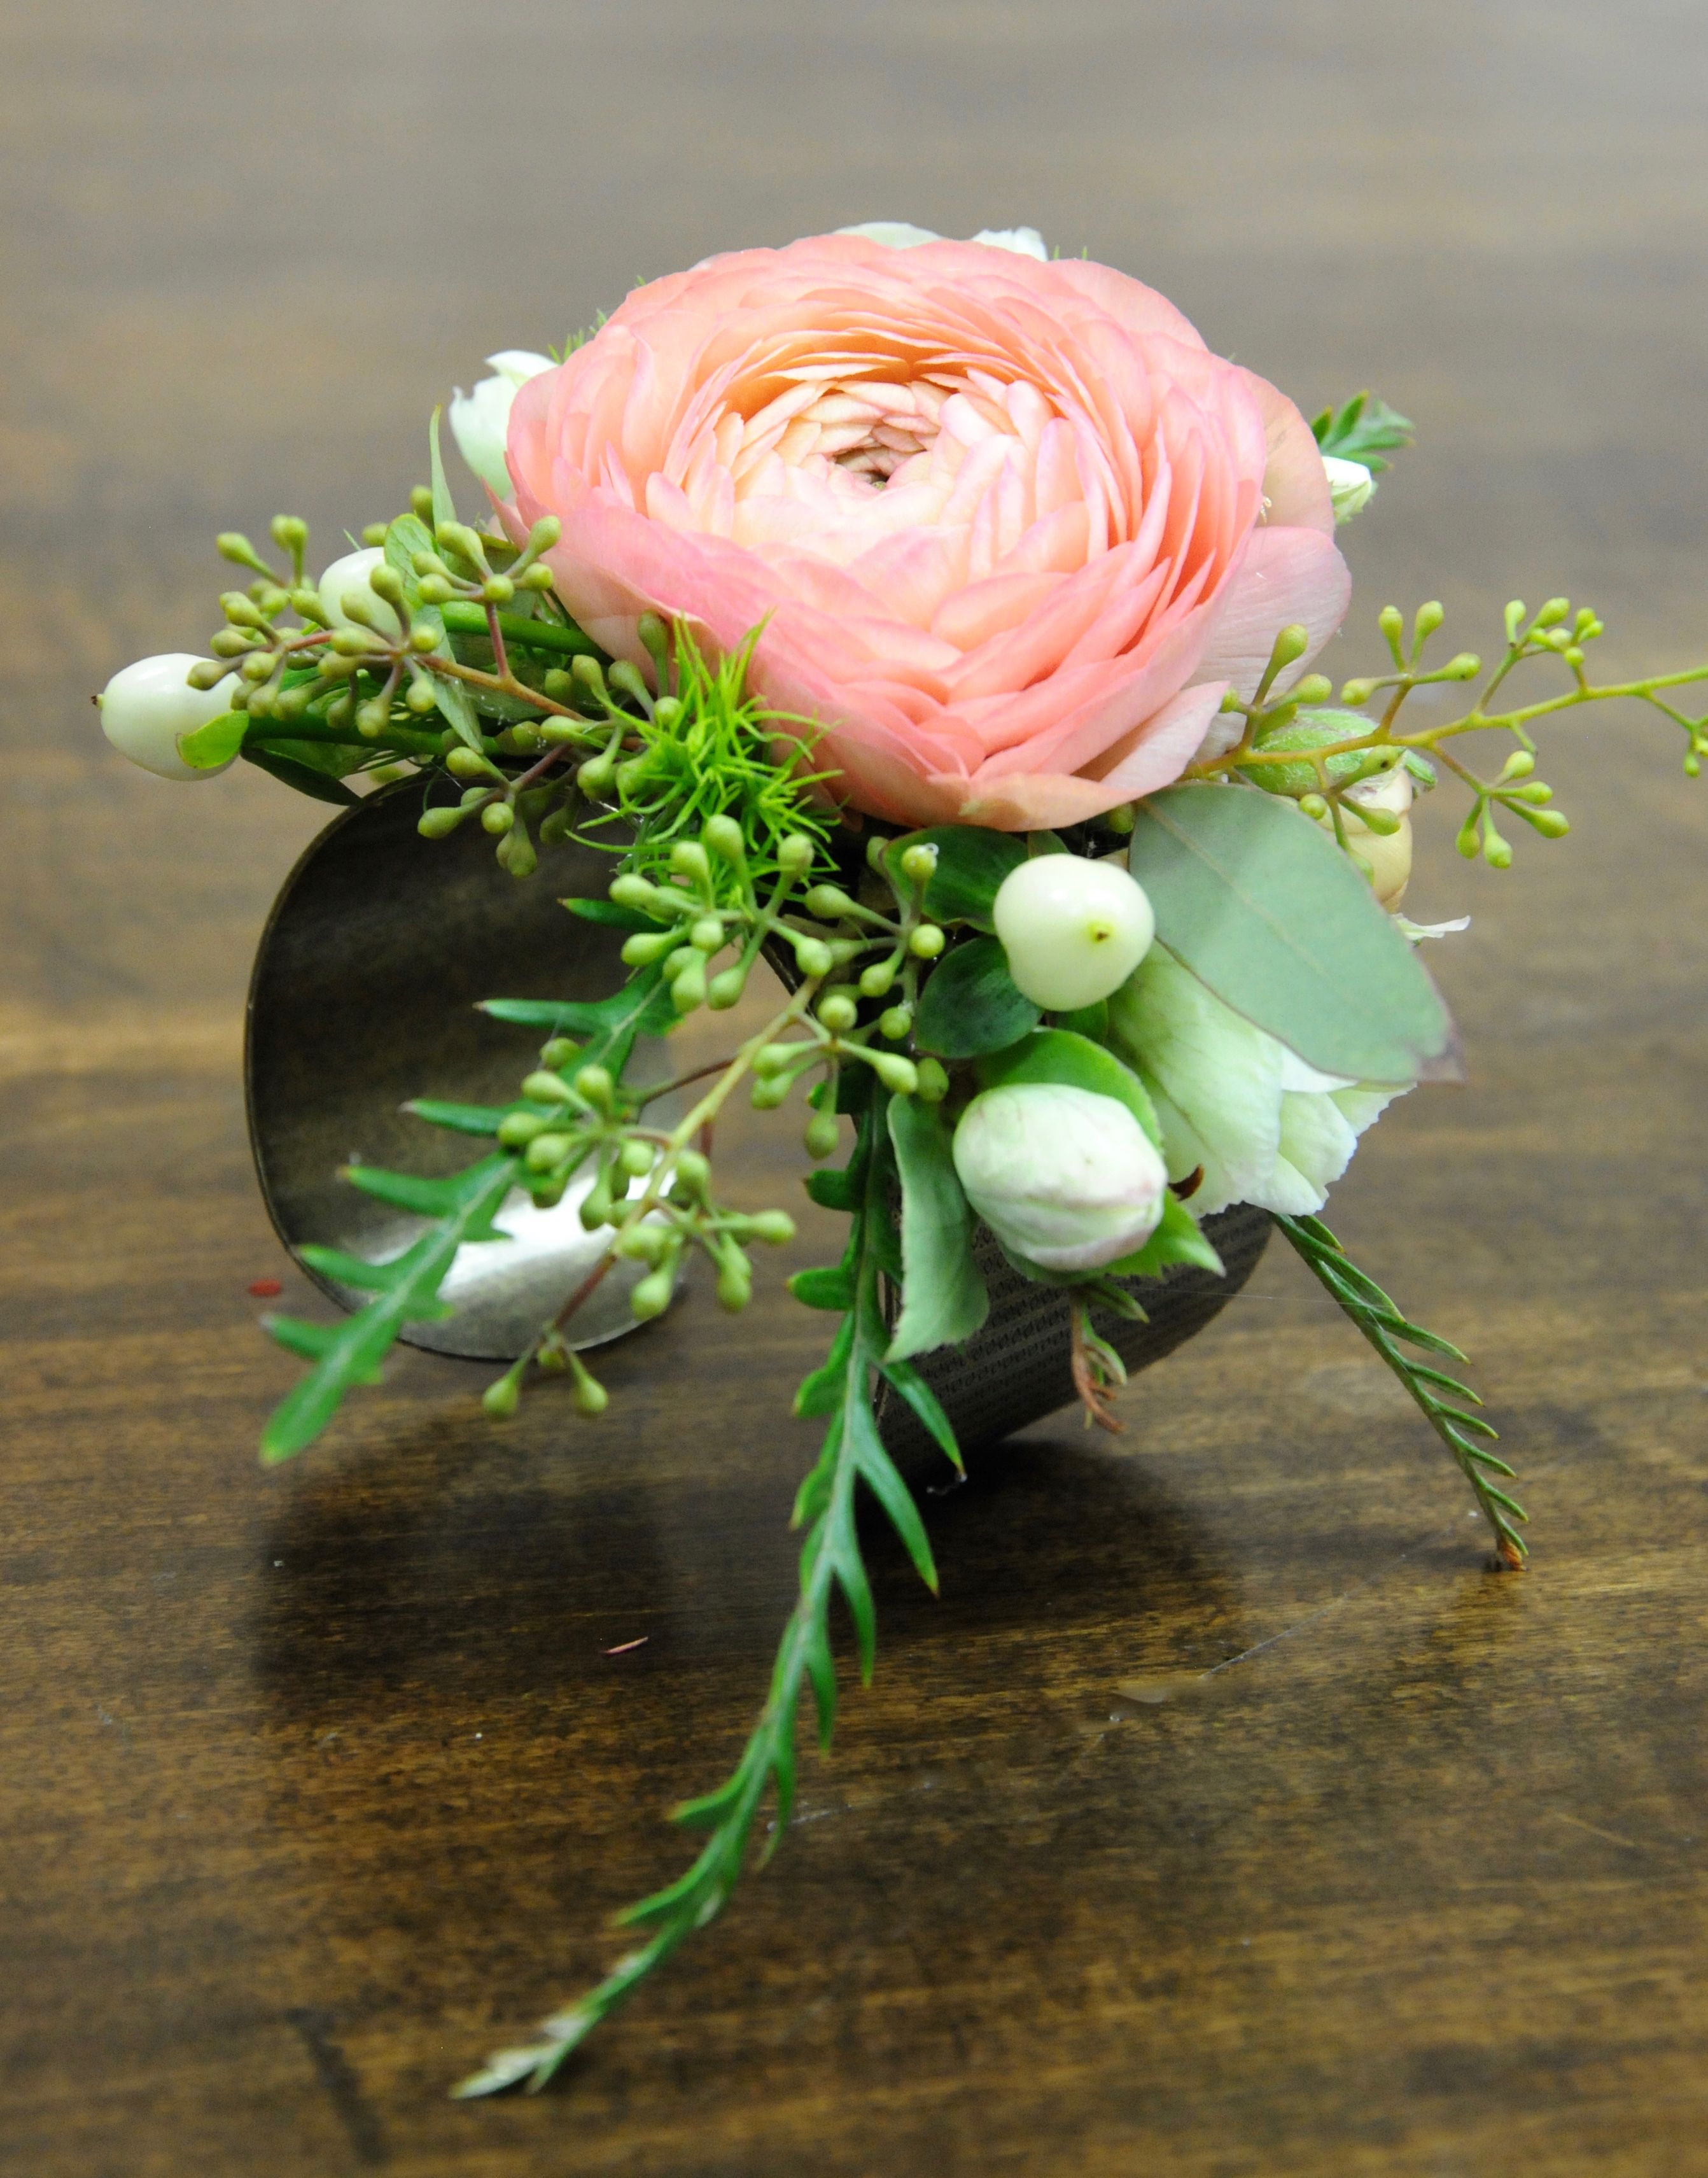 Corsage Cuff With Ranunculus Designed By Hafner Florist Sylvania Ohio Homecoming Flowers Prom Flowers Homecoming Corsage